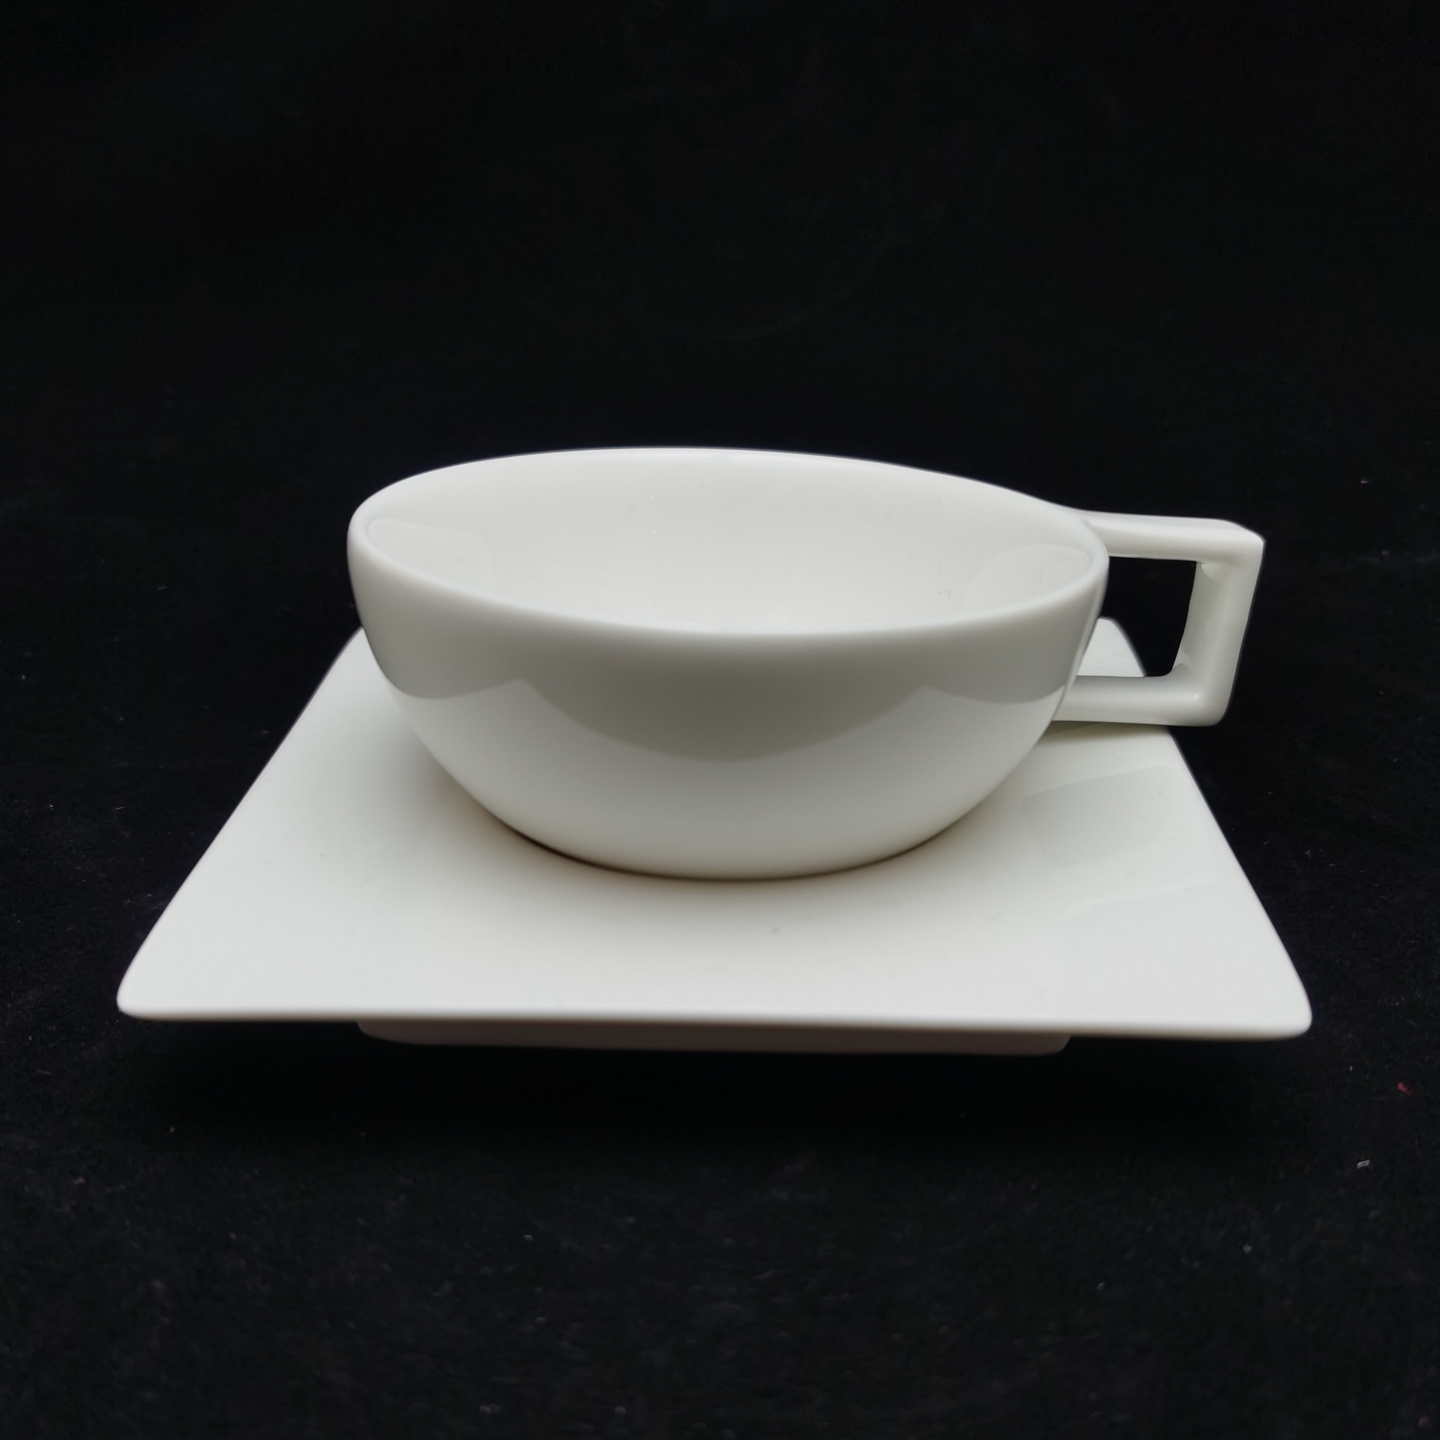 Reinforced Bone China Geometric-Shaped Coffee Cups - Semi Spherical